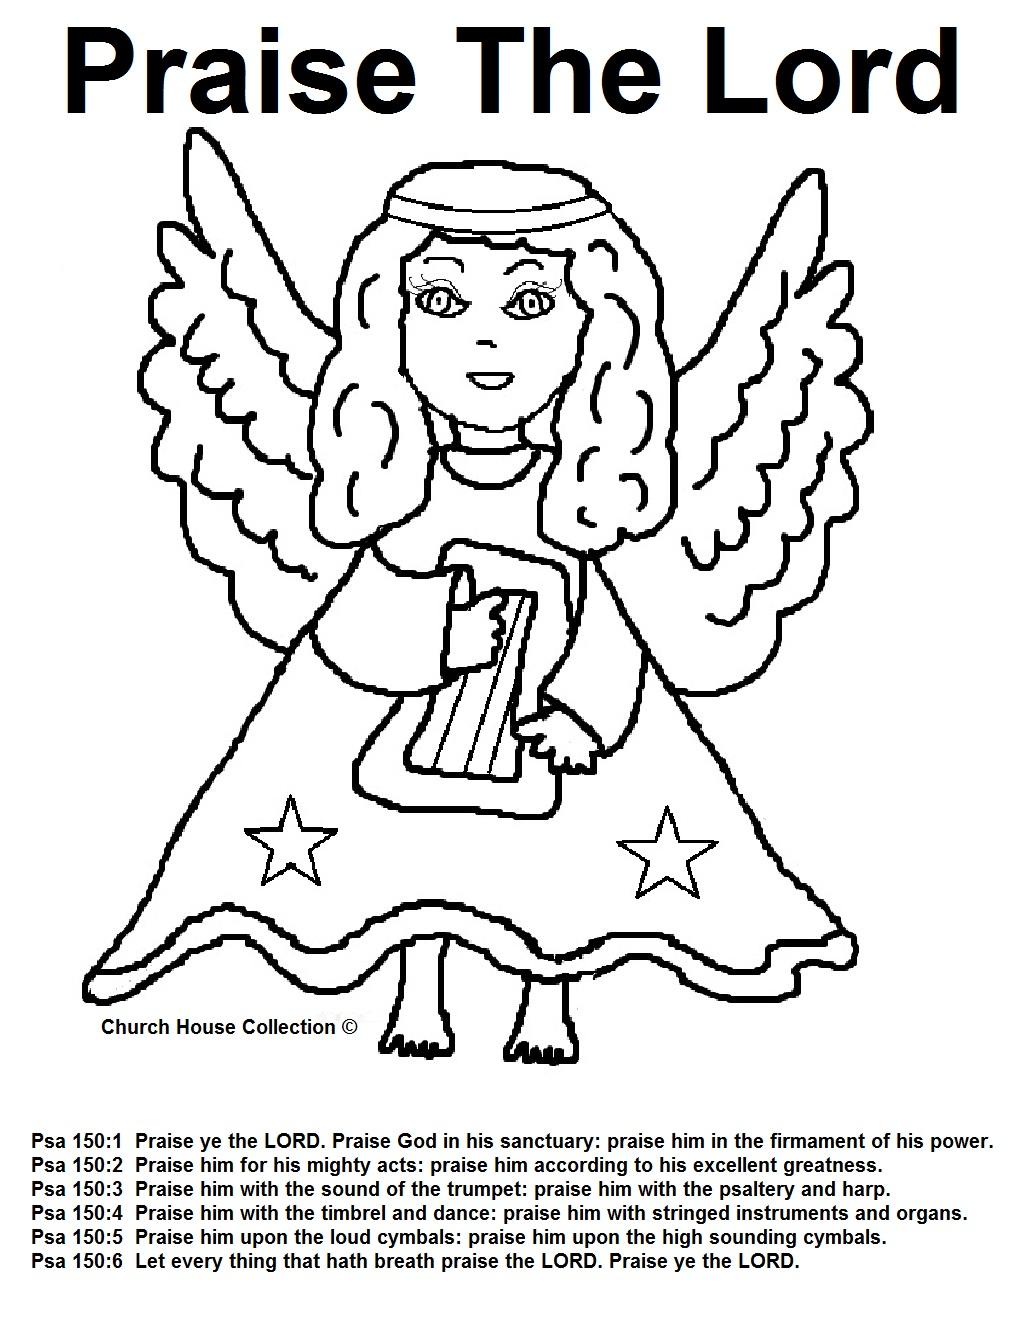 worship the lord coloring pages - photo#7